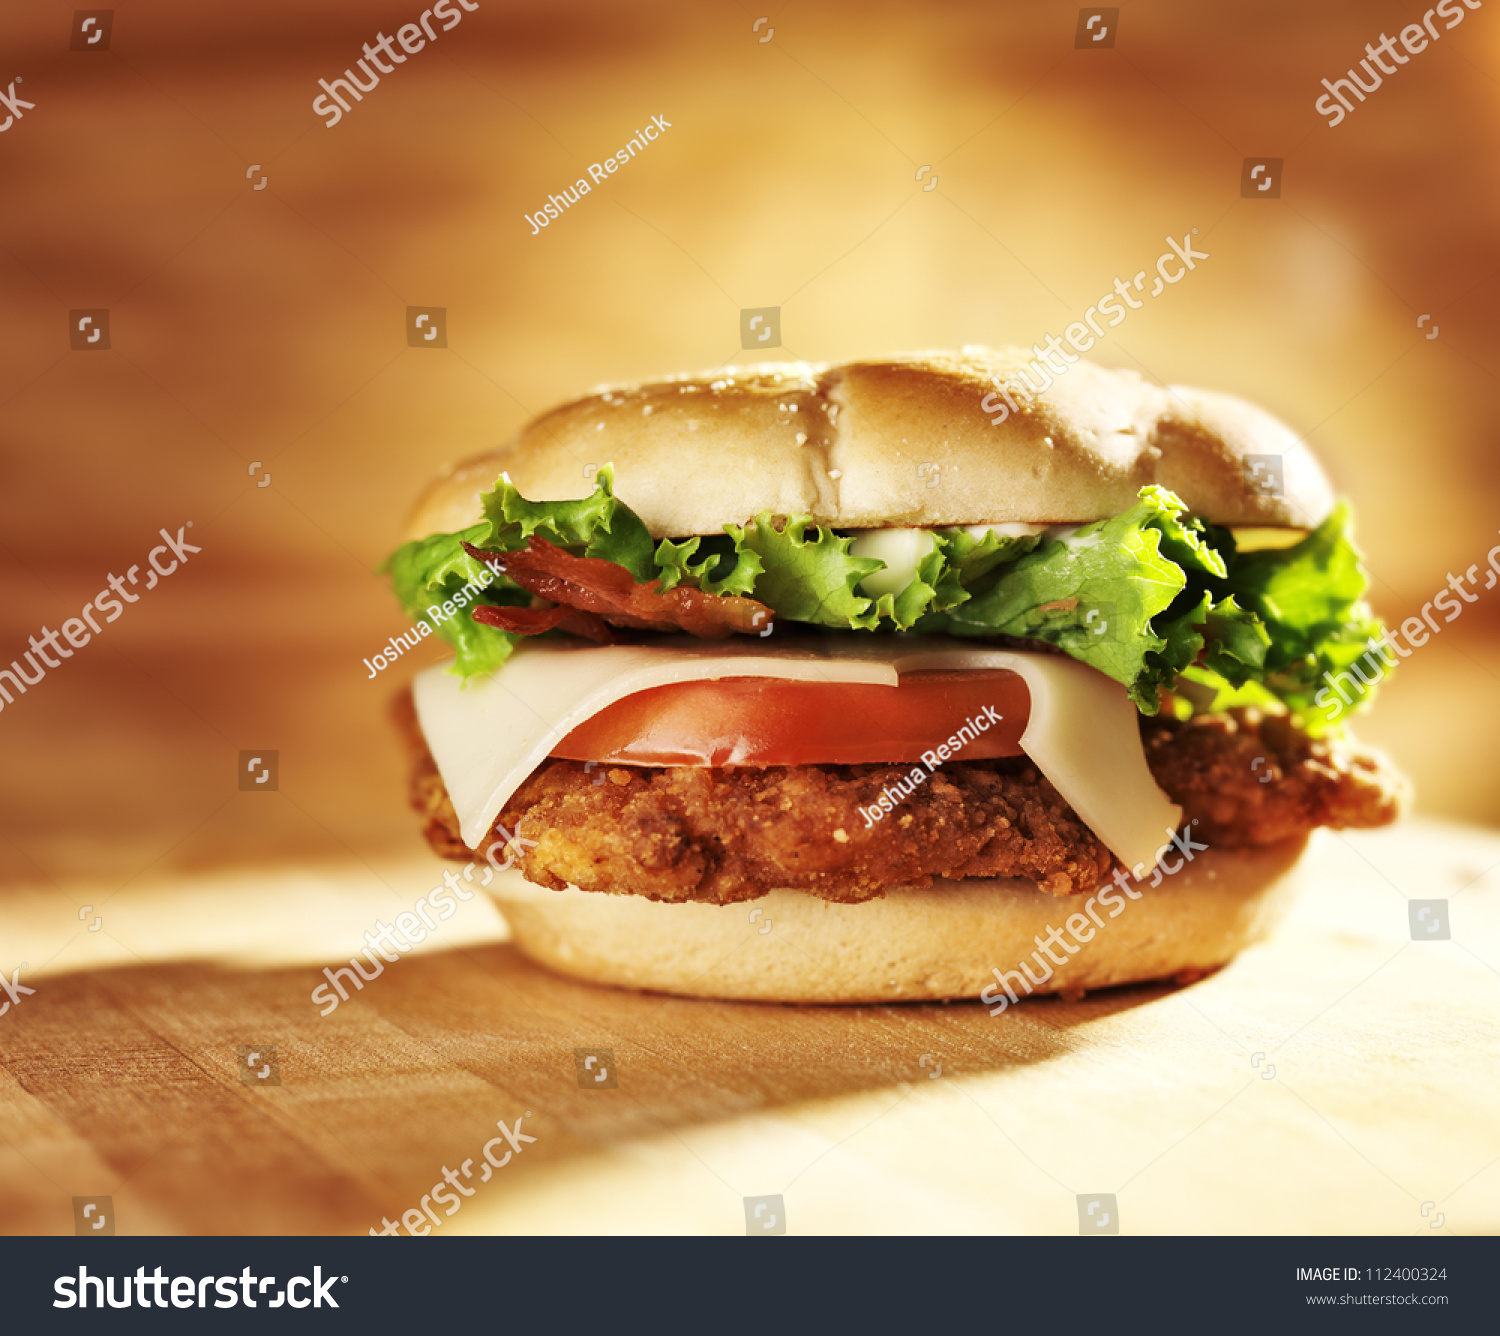 Crispy Chicken Sandwich With Bacon And Swiss Cheese. Stock Photo ...